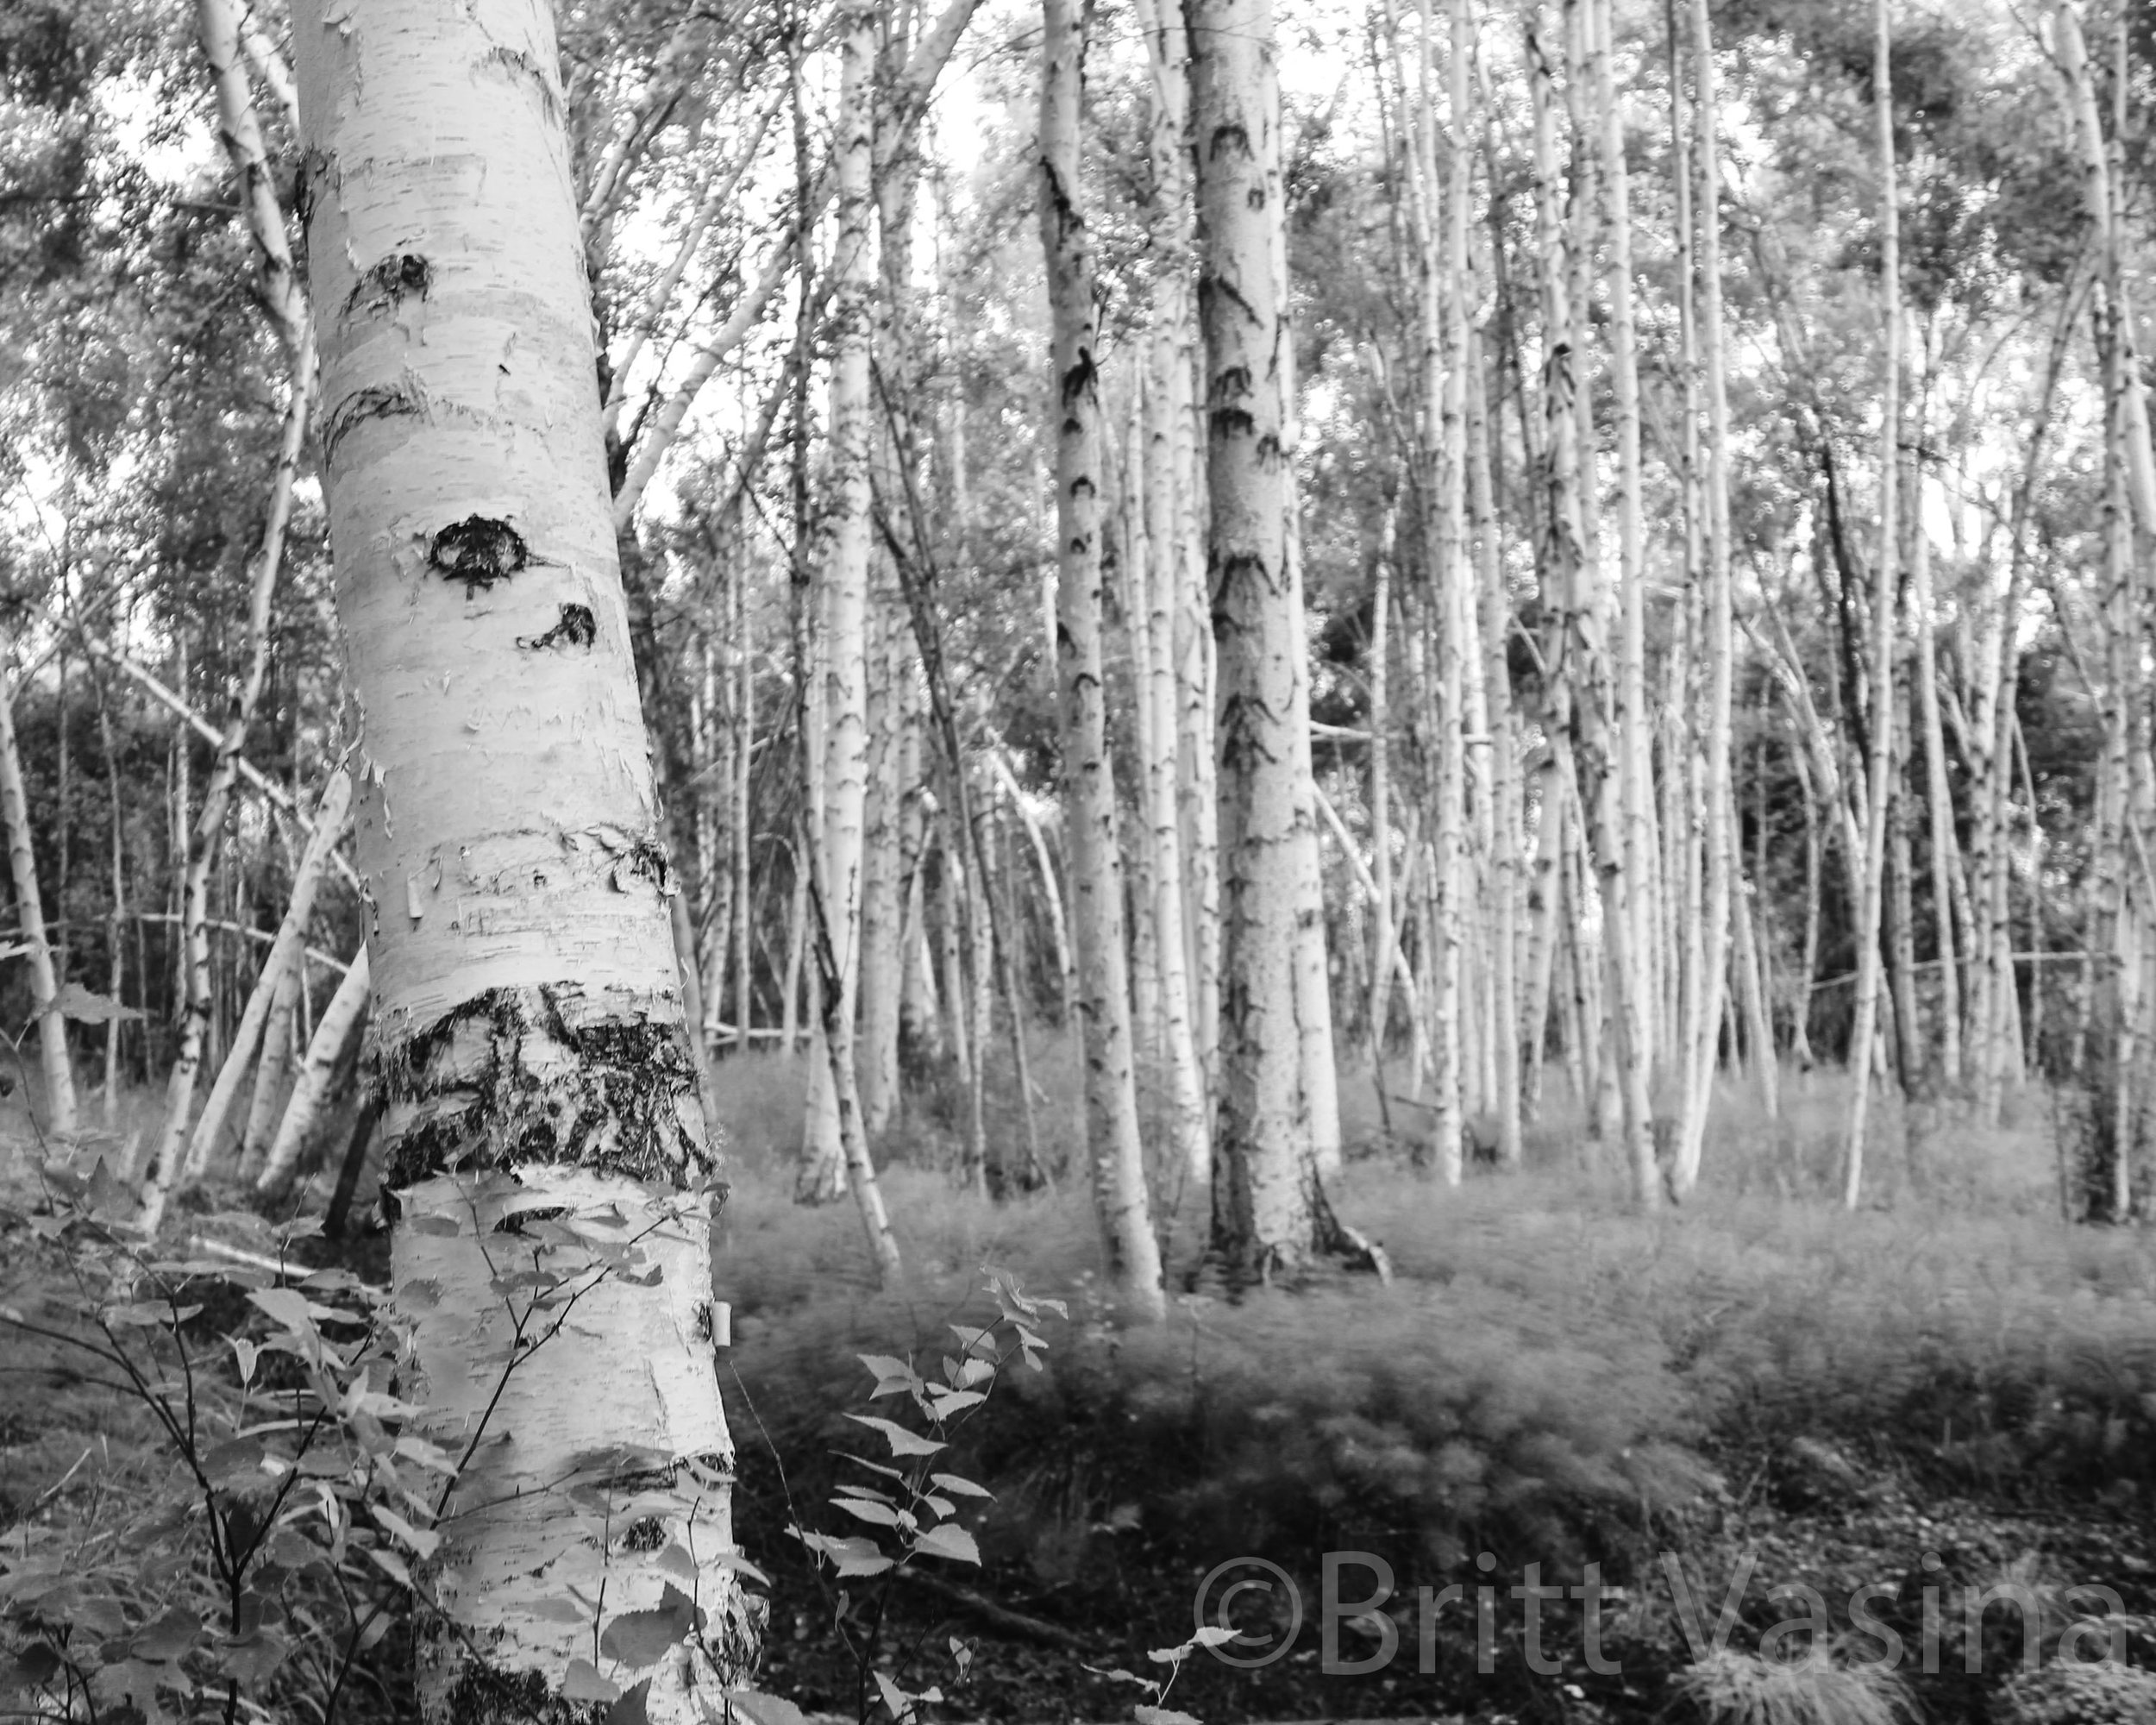 NEWAspens_8x10_B&W WM.jpg